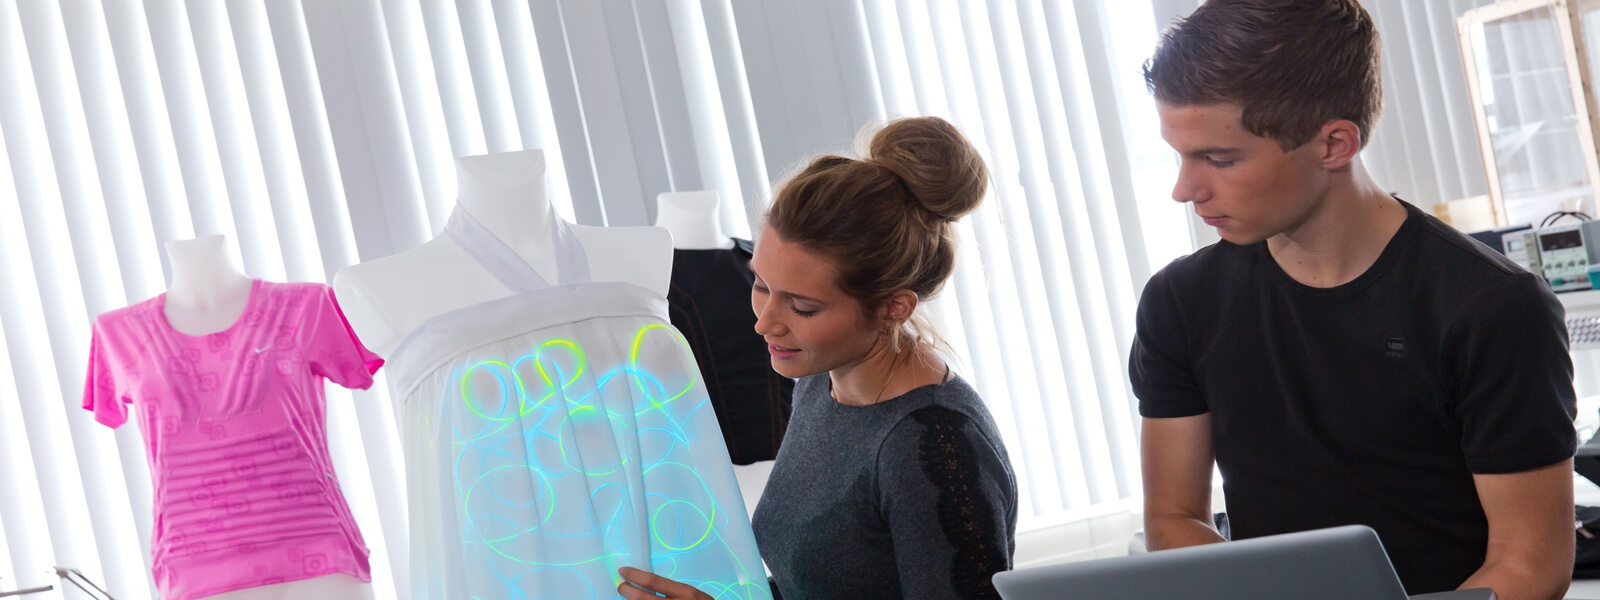 bachelor-fashion-and-textile-technologies-studyinholland-universitiesofappliedsciences-saxion-enschede-holland